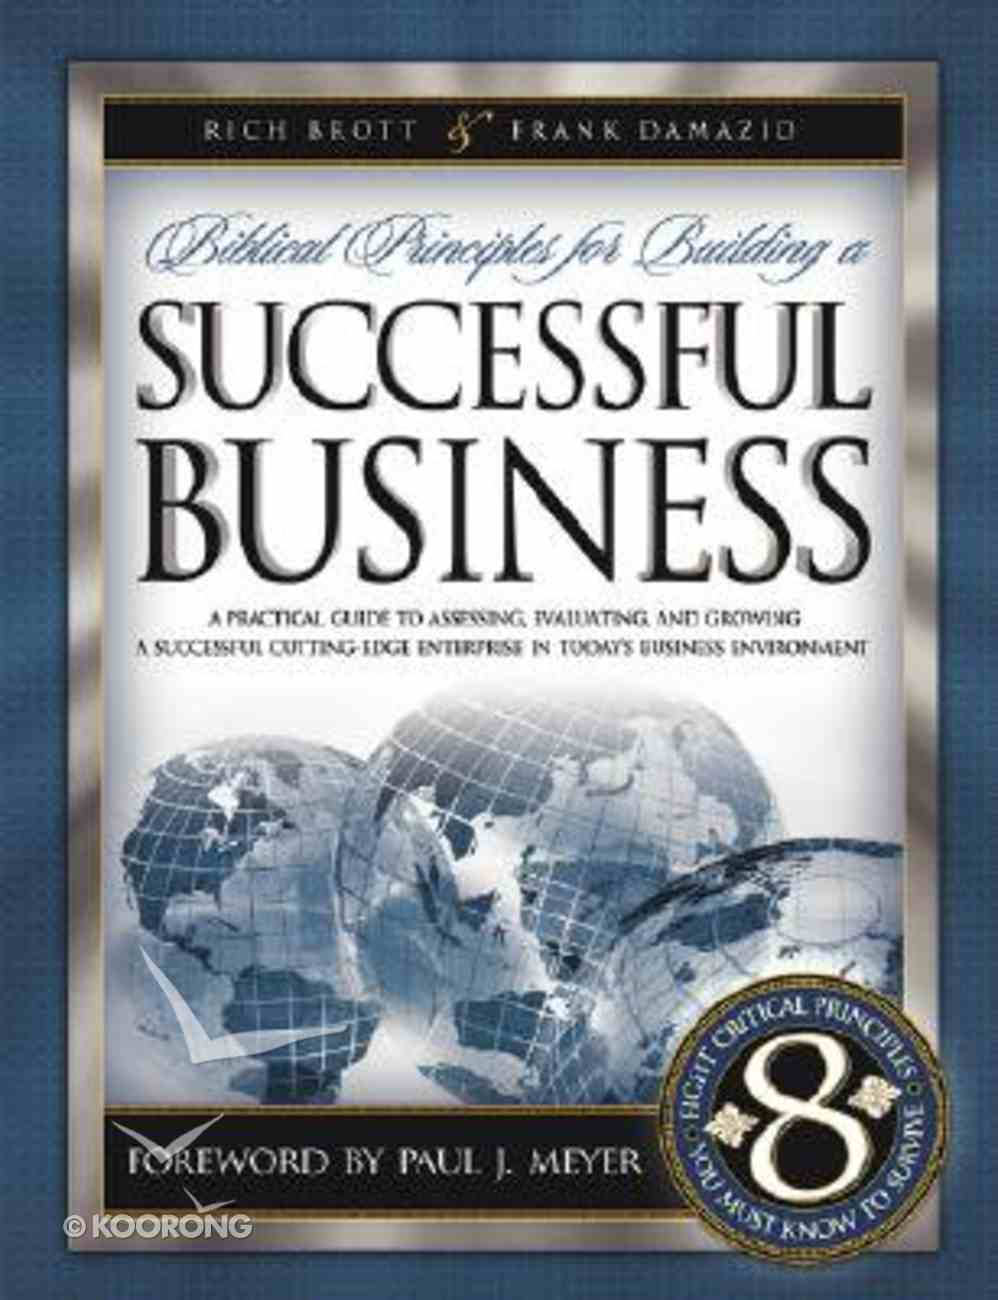 Biblical Principles For Building a Successful Business Paperback